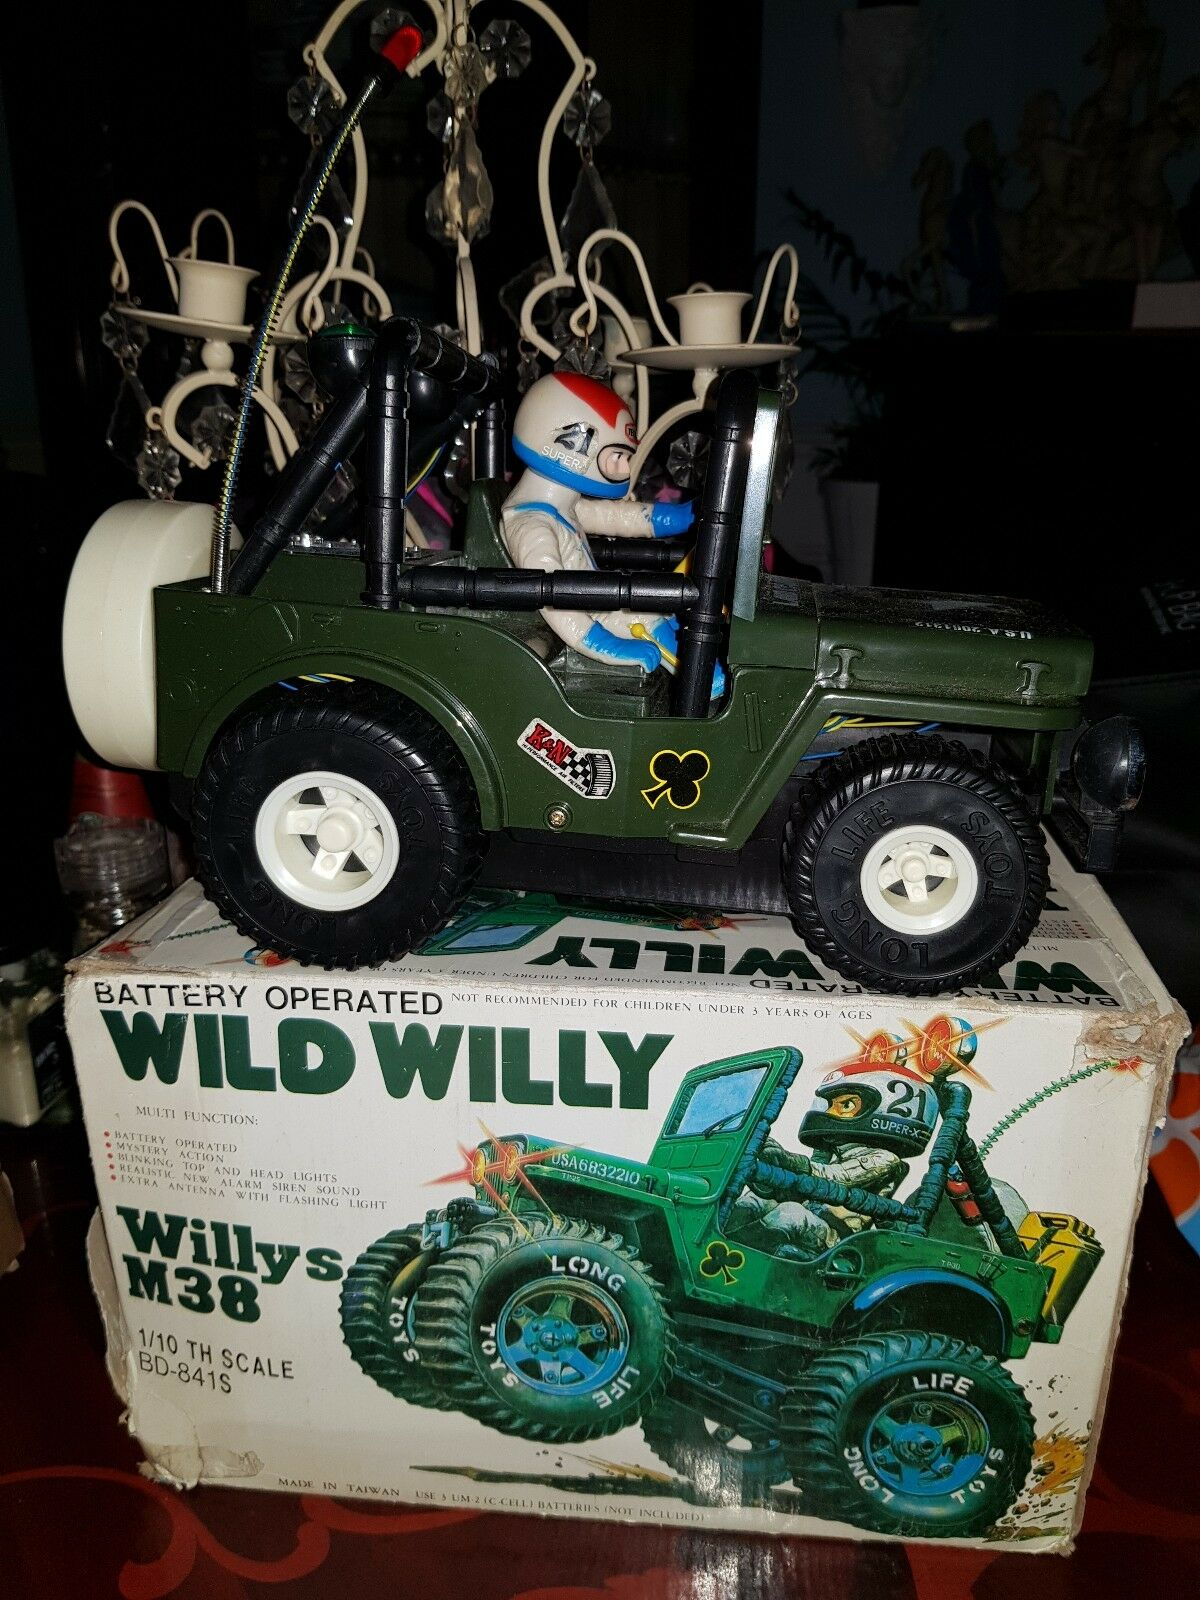 Wild Willy M38 Jeep Cheng Shing Toys 1980s NOT TAMIYA- Battery Operated BD-841S